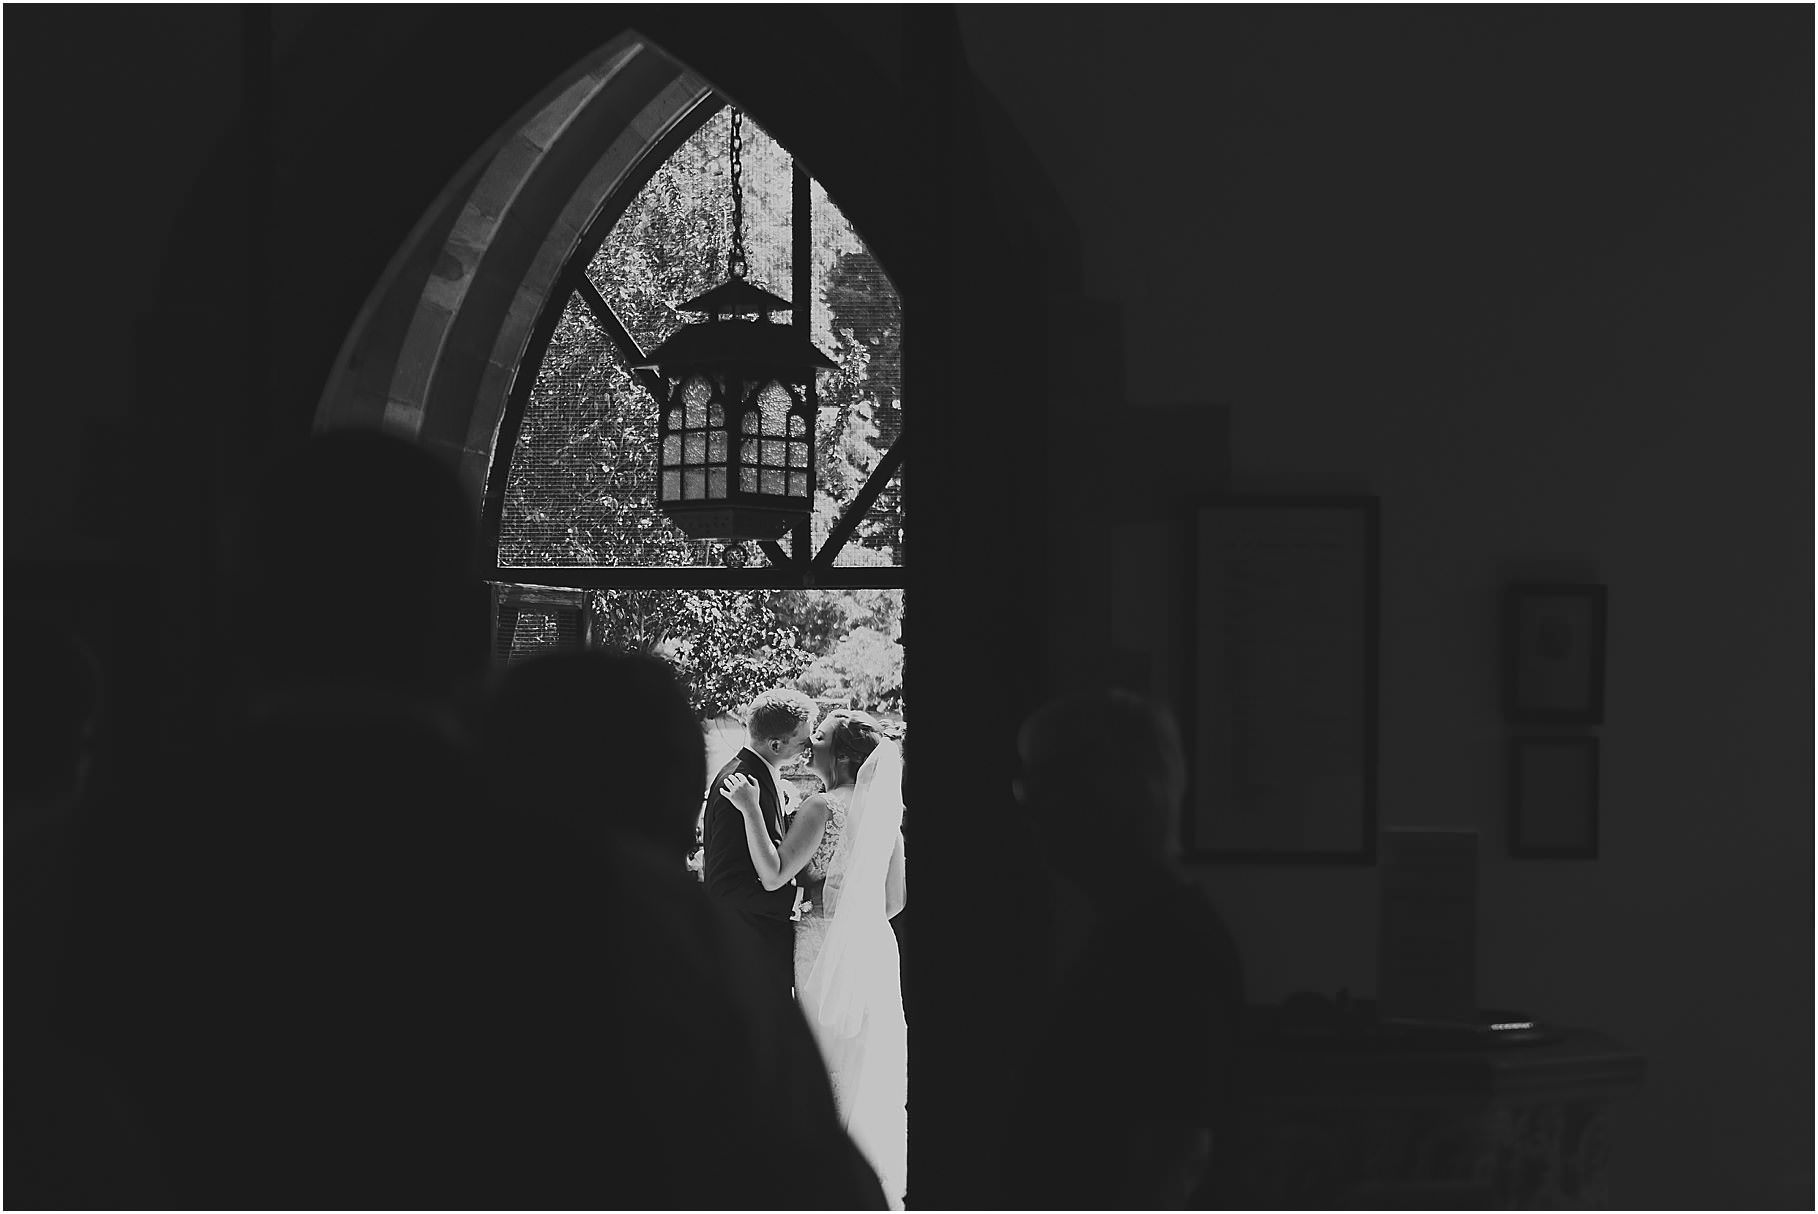 Rutland Weddings Exton Hall Exton Oakham Rutland Water Photographer 1058 - Mr and Mrs Barker // RUTLAND WEDDING